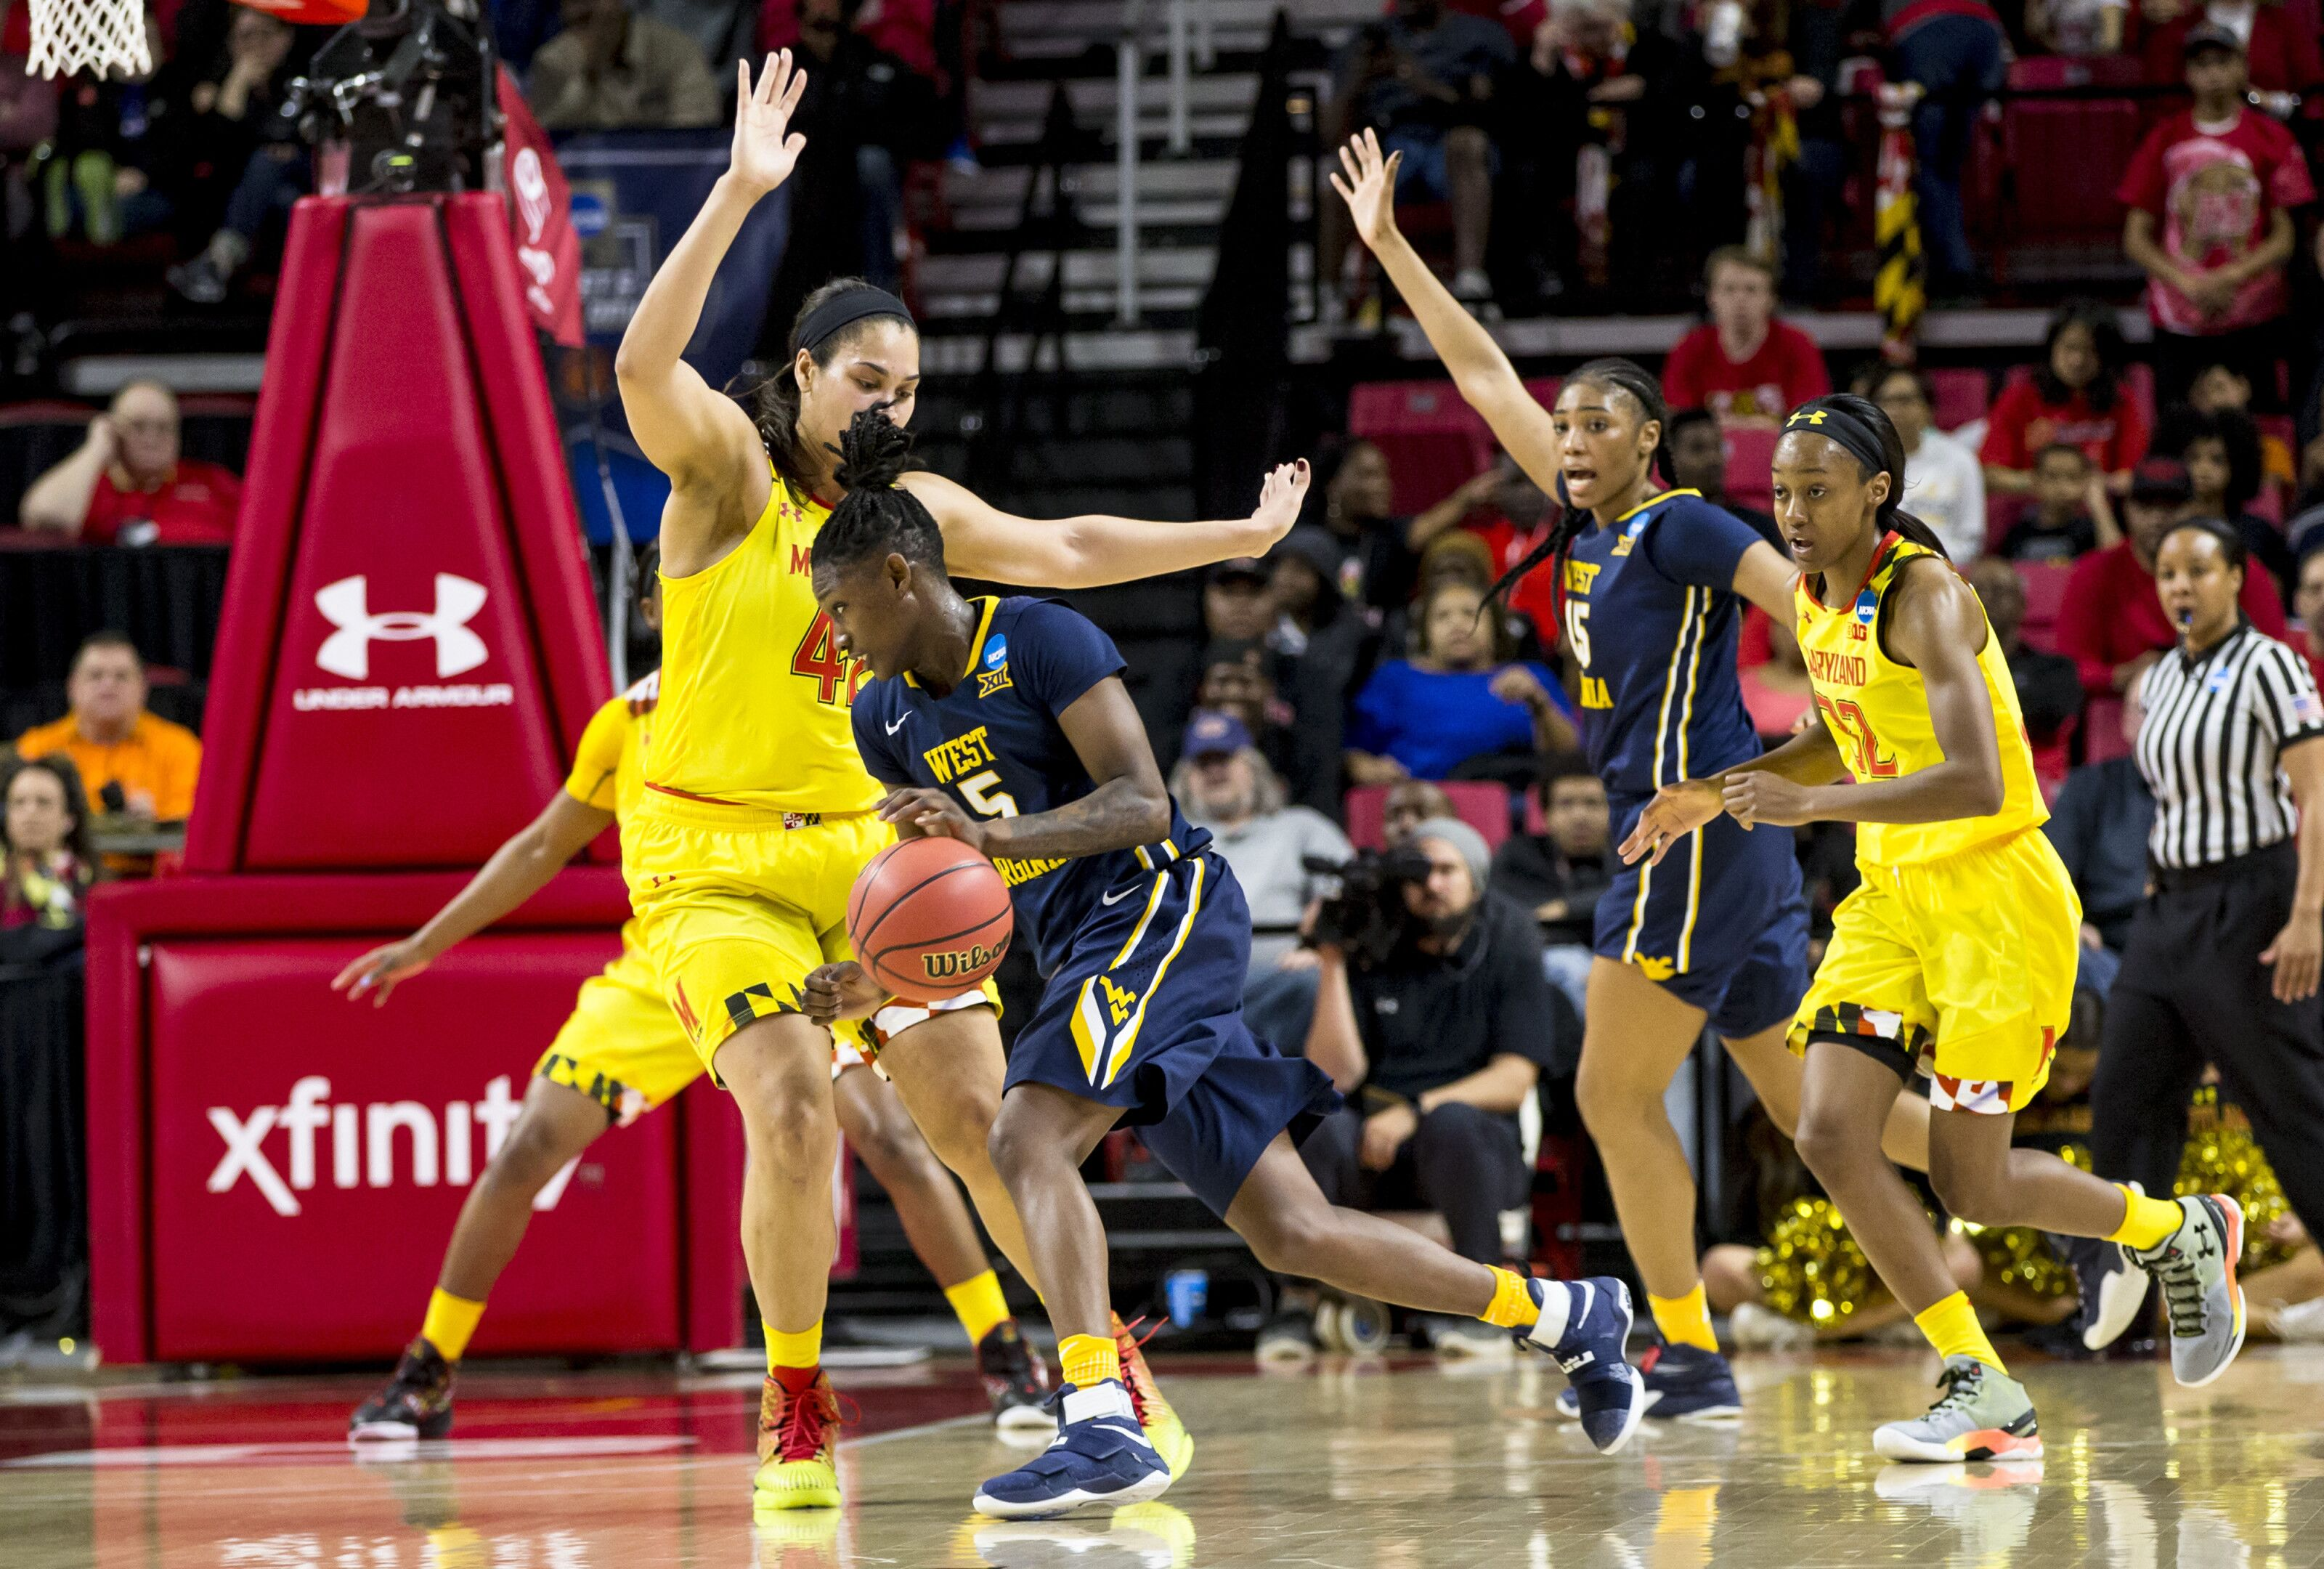 This Week in the Big 12: West Virginia's Tynice Martin is back in a big way